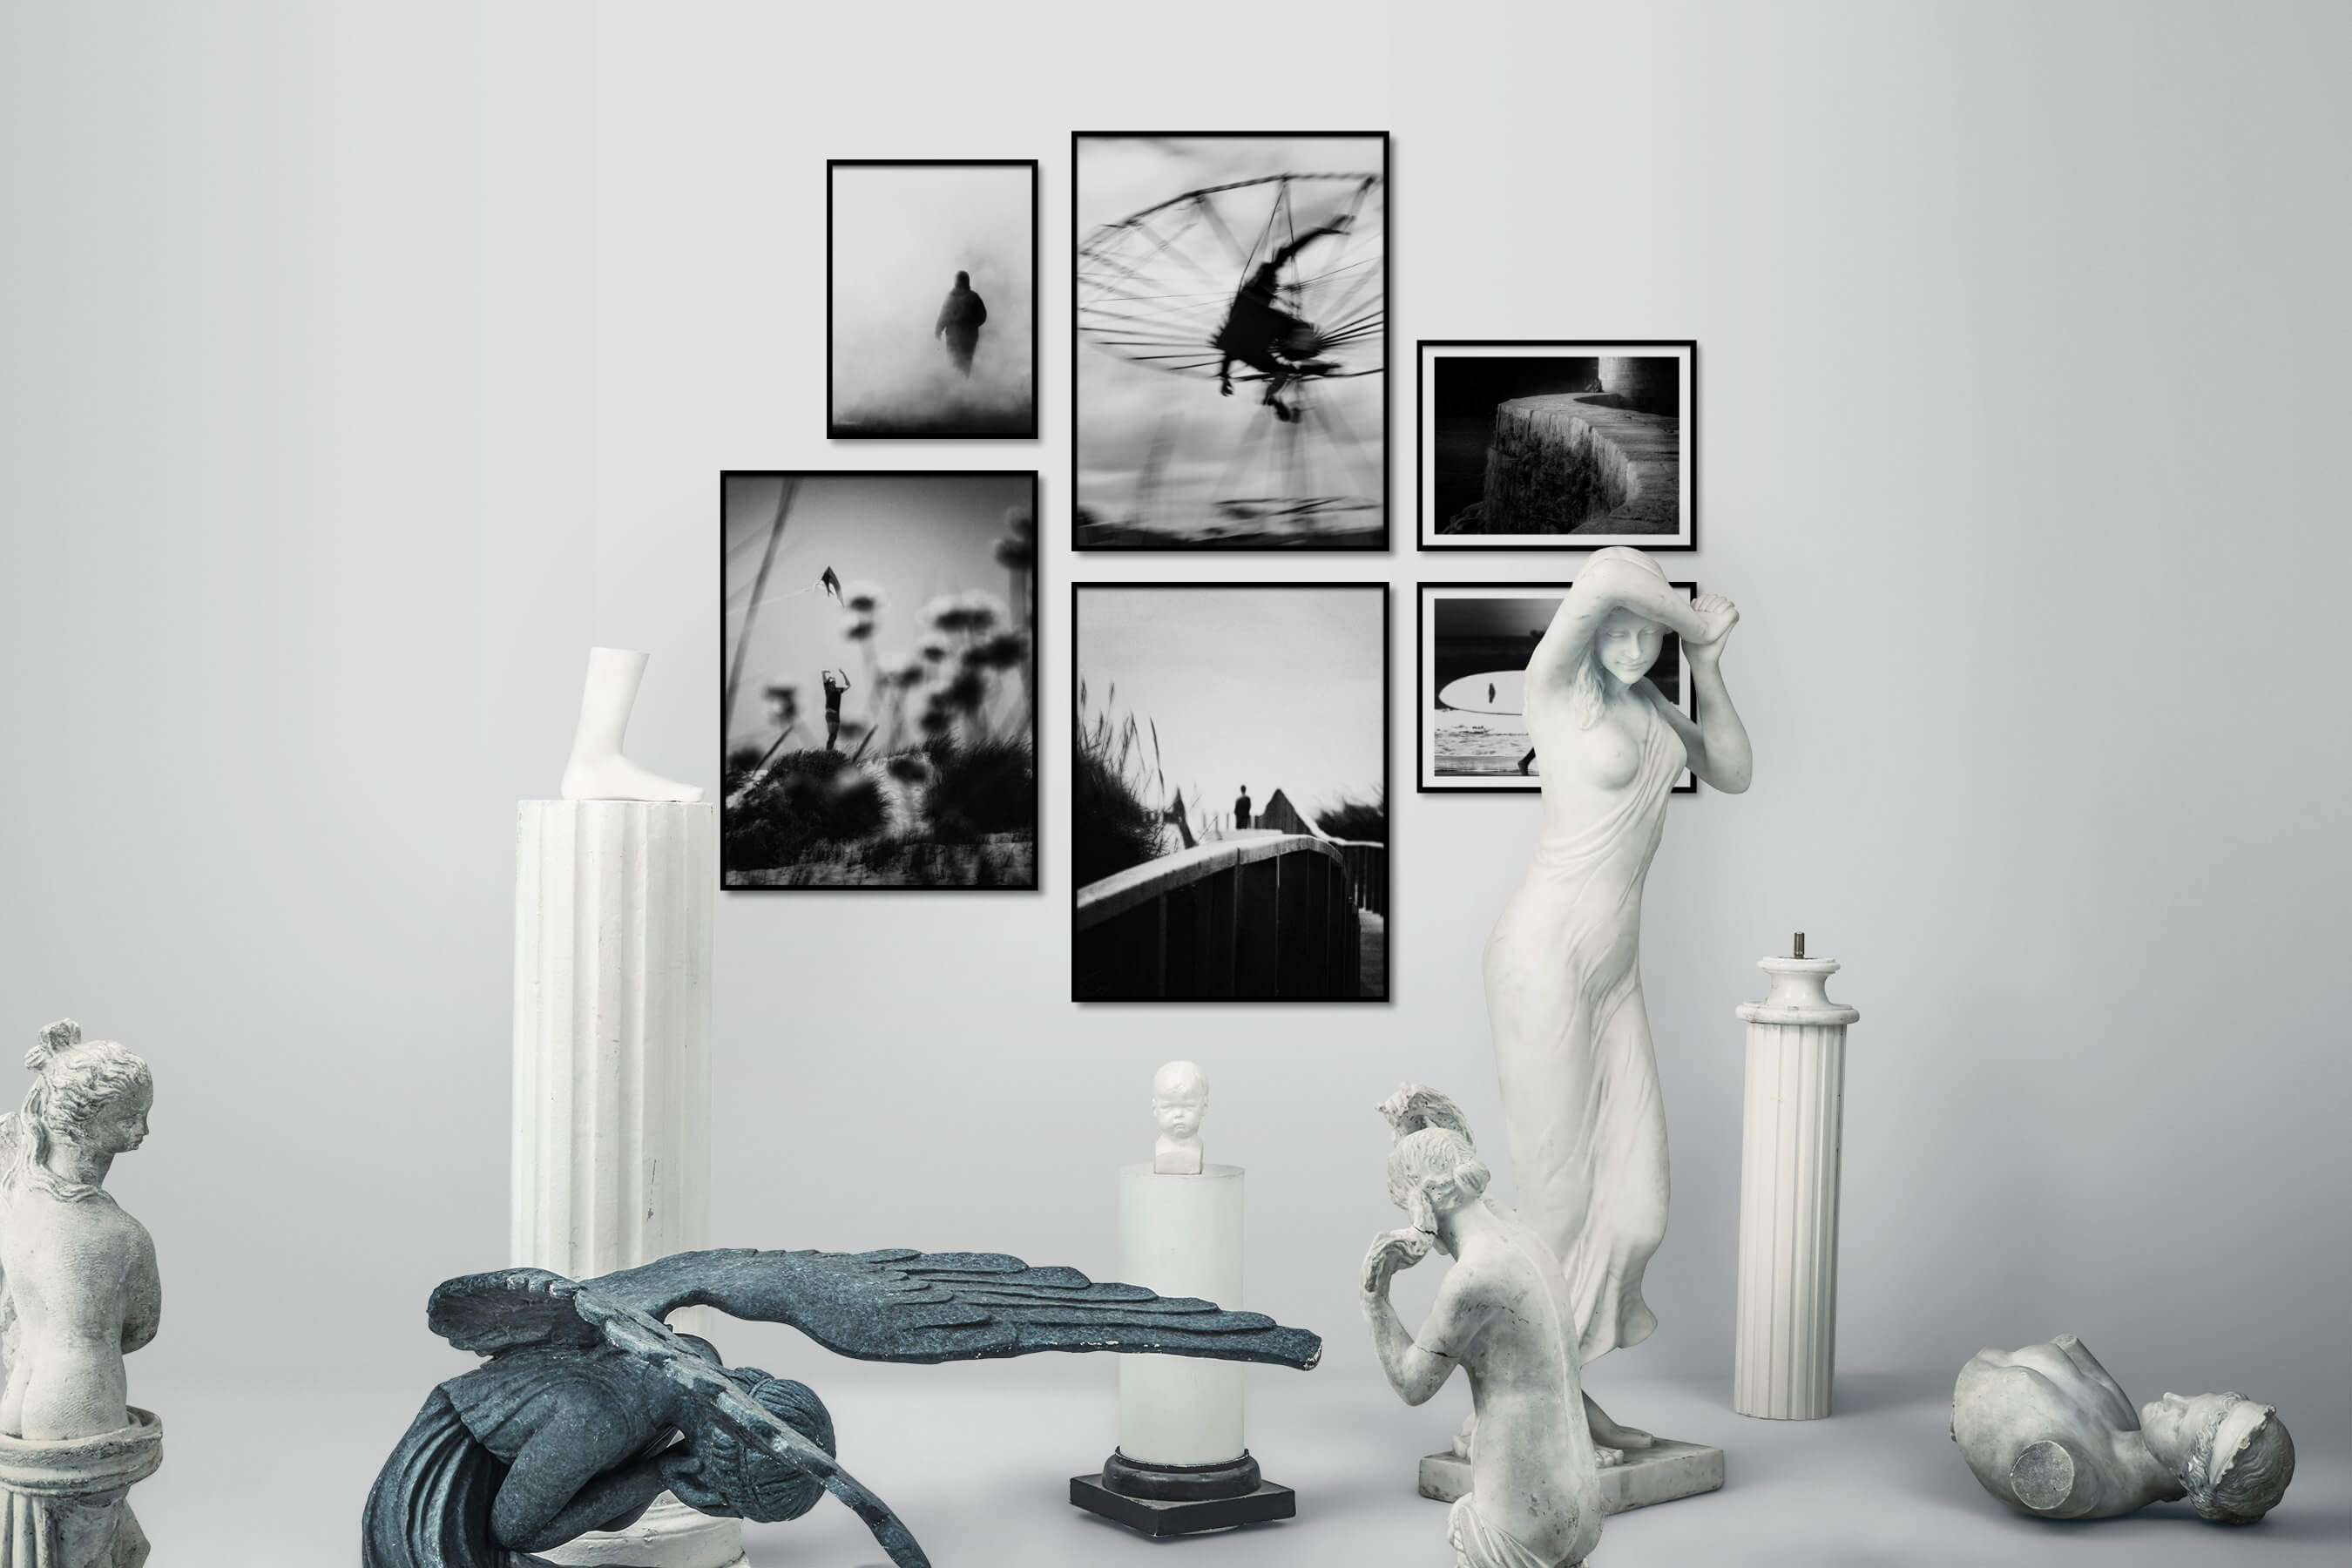 Gallery wall idea with six framed pictures arranged on a wall depicting Black & White, For the Minimalist, For the Moderate, and Beach & Water